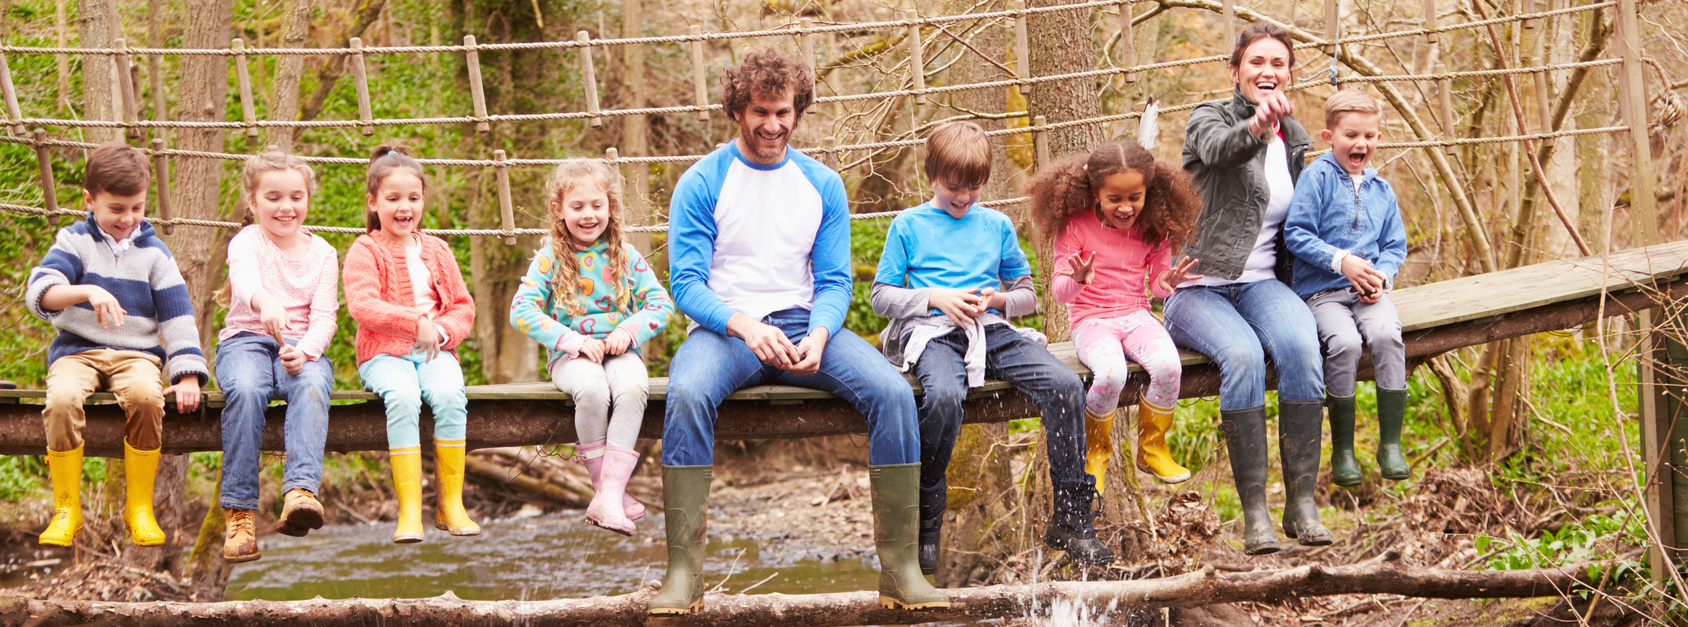 Adults With Children On Bridge At Outdoor Activity Centre